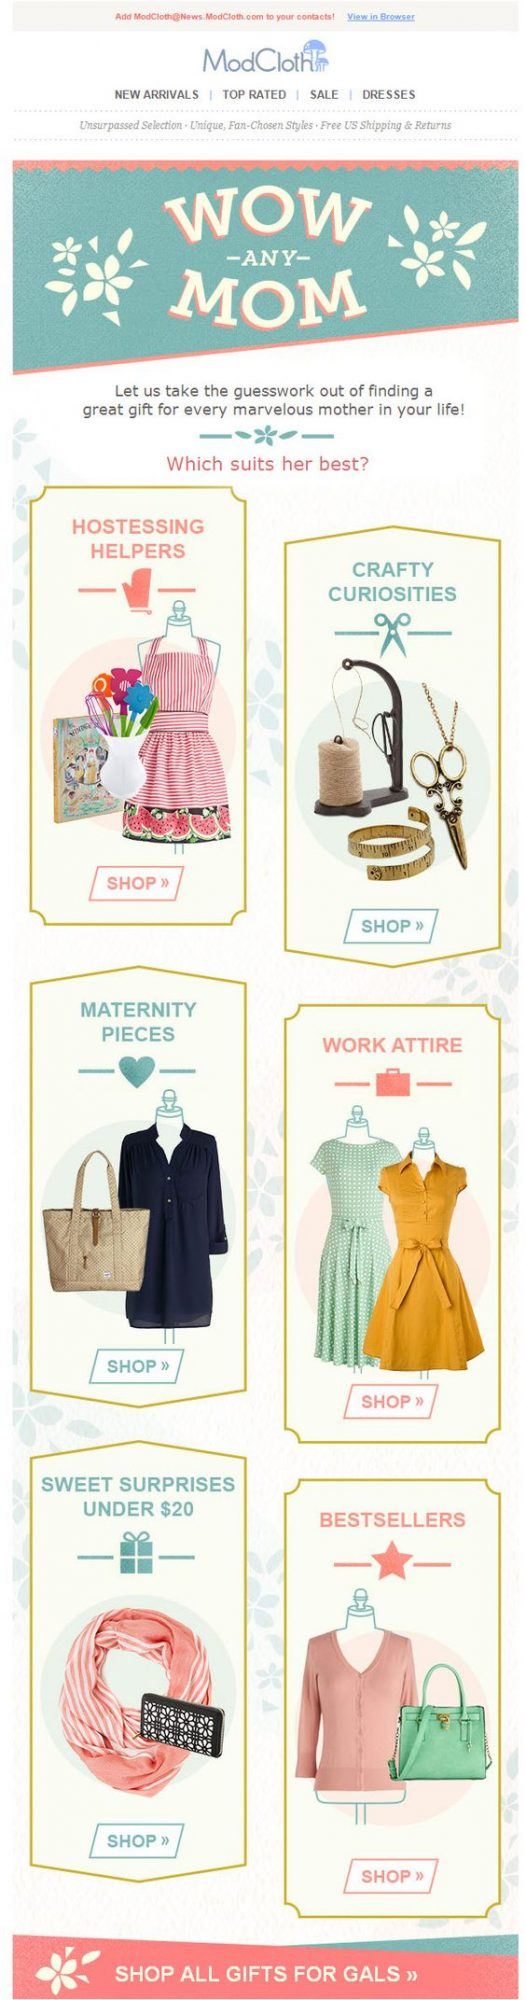 Modcloth's Mother's Day Marketing Campaigns We Loved